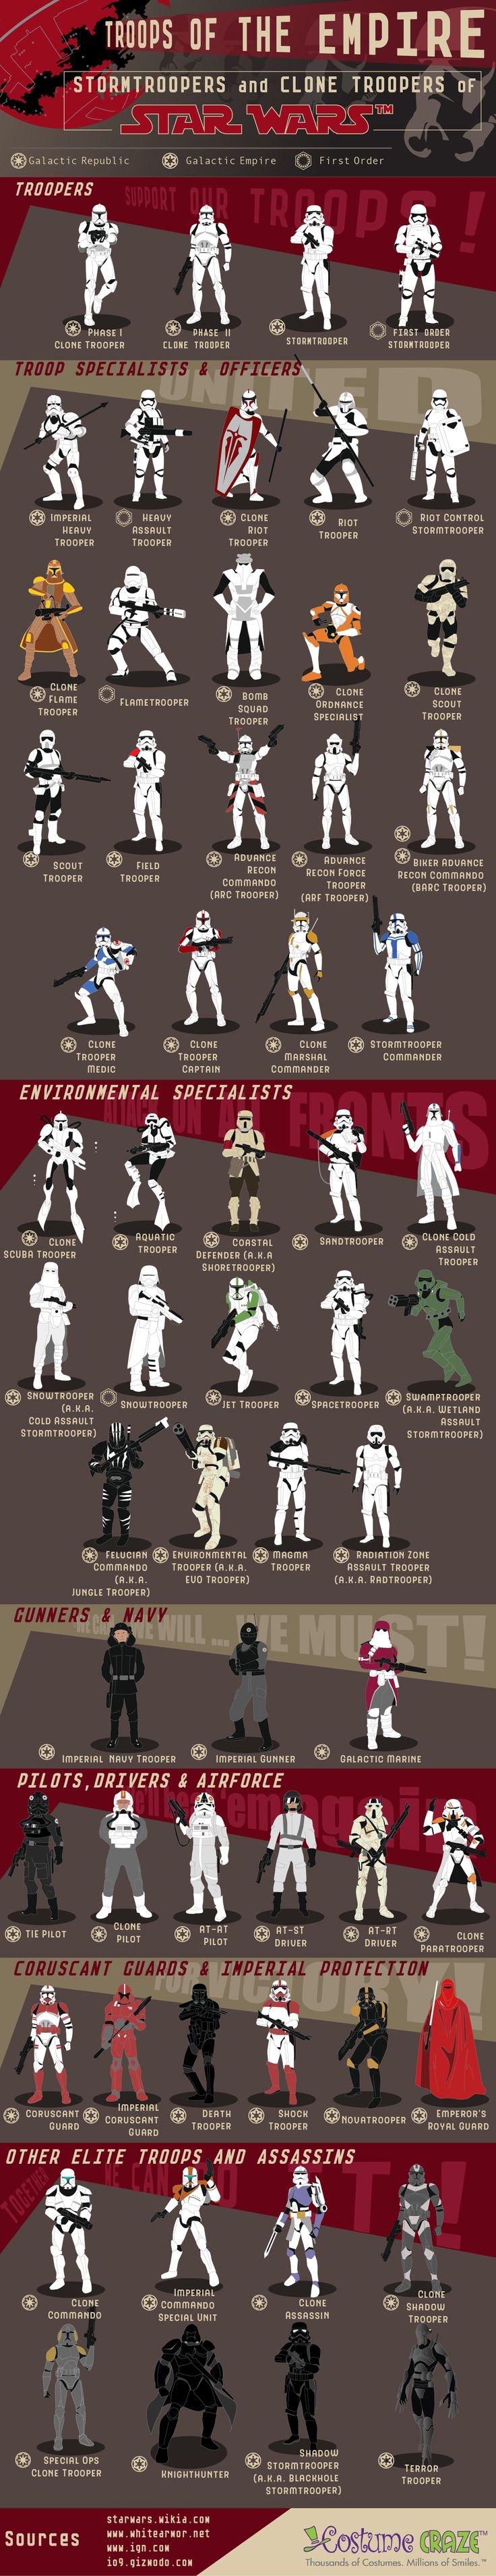 50 Stormtroopers and Clone troopers from Star Wars